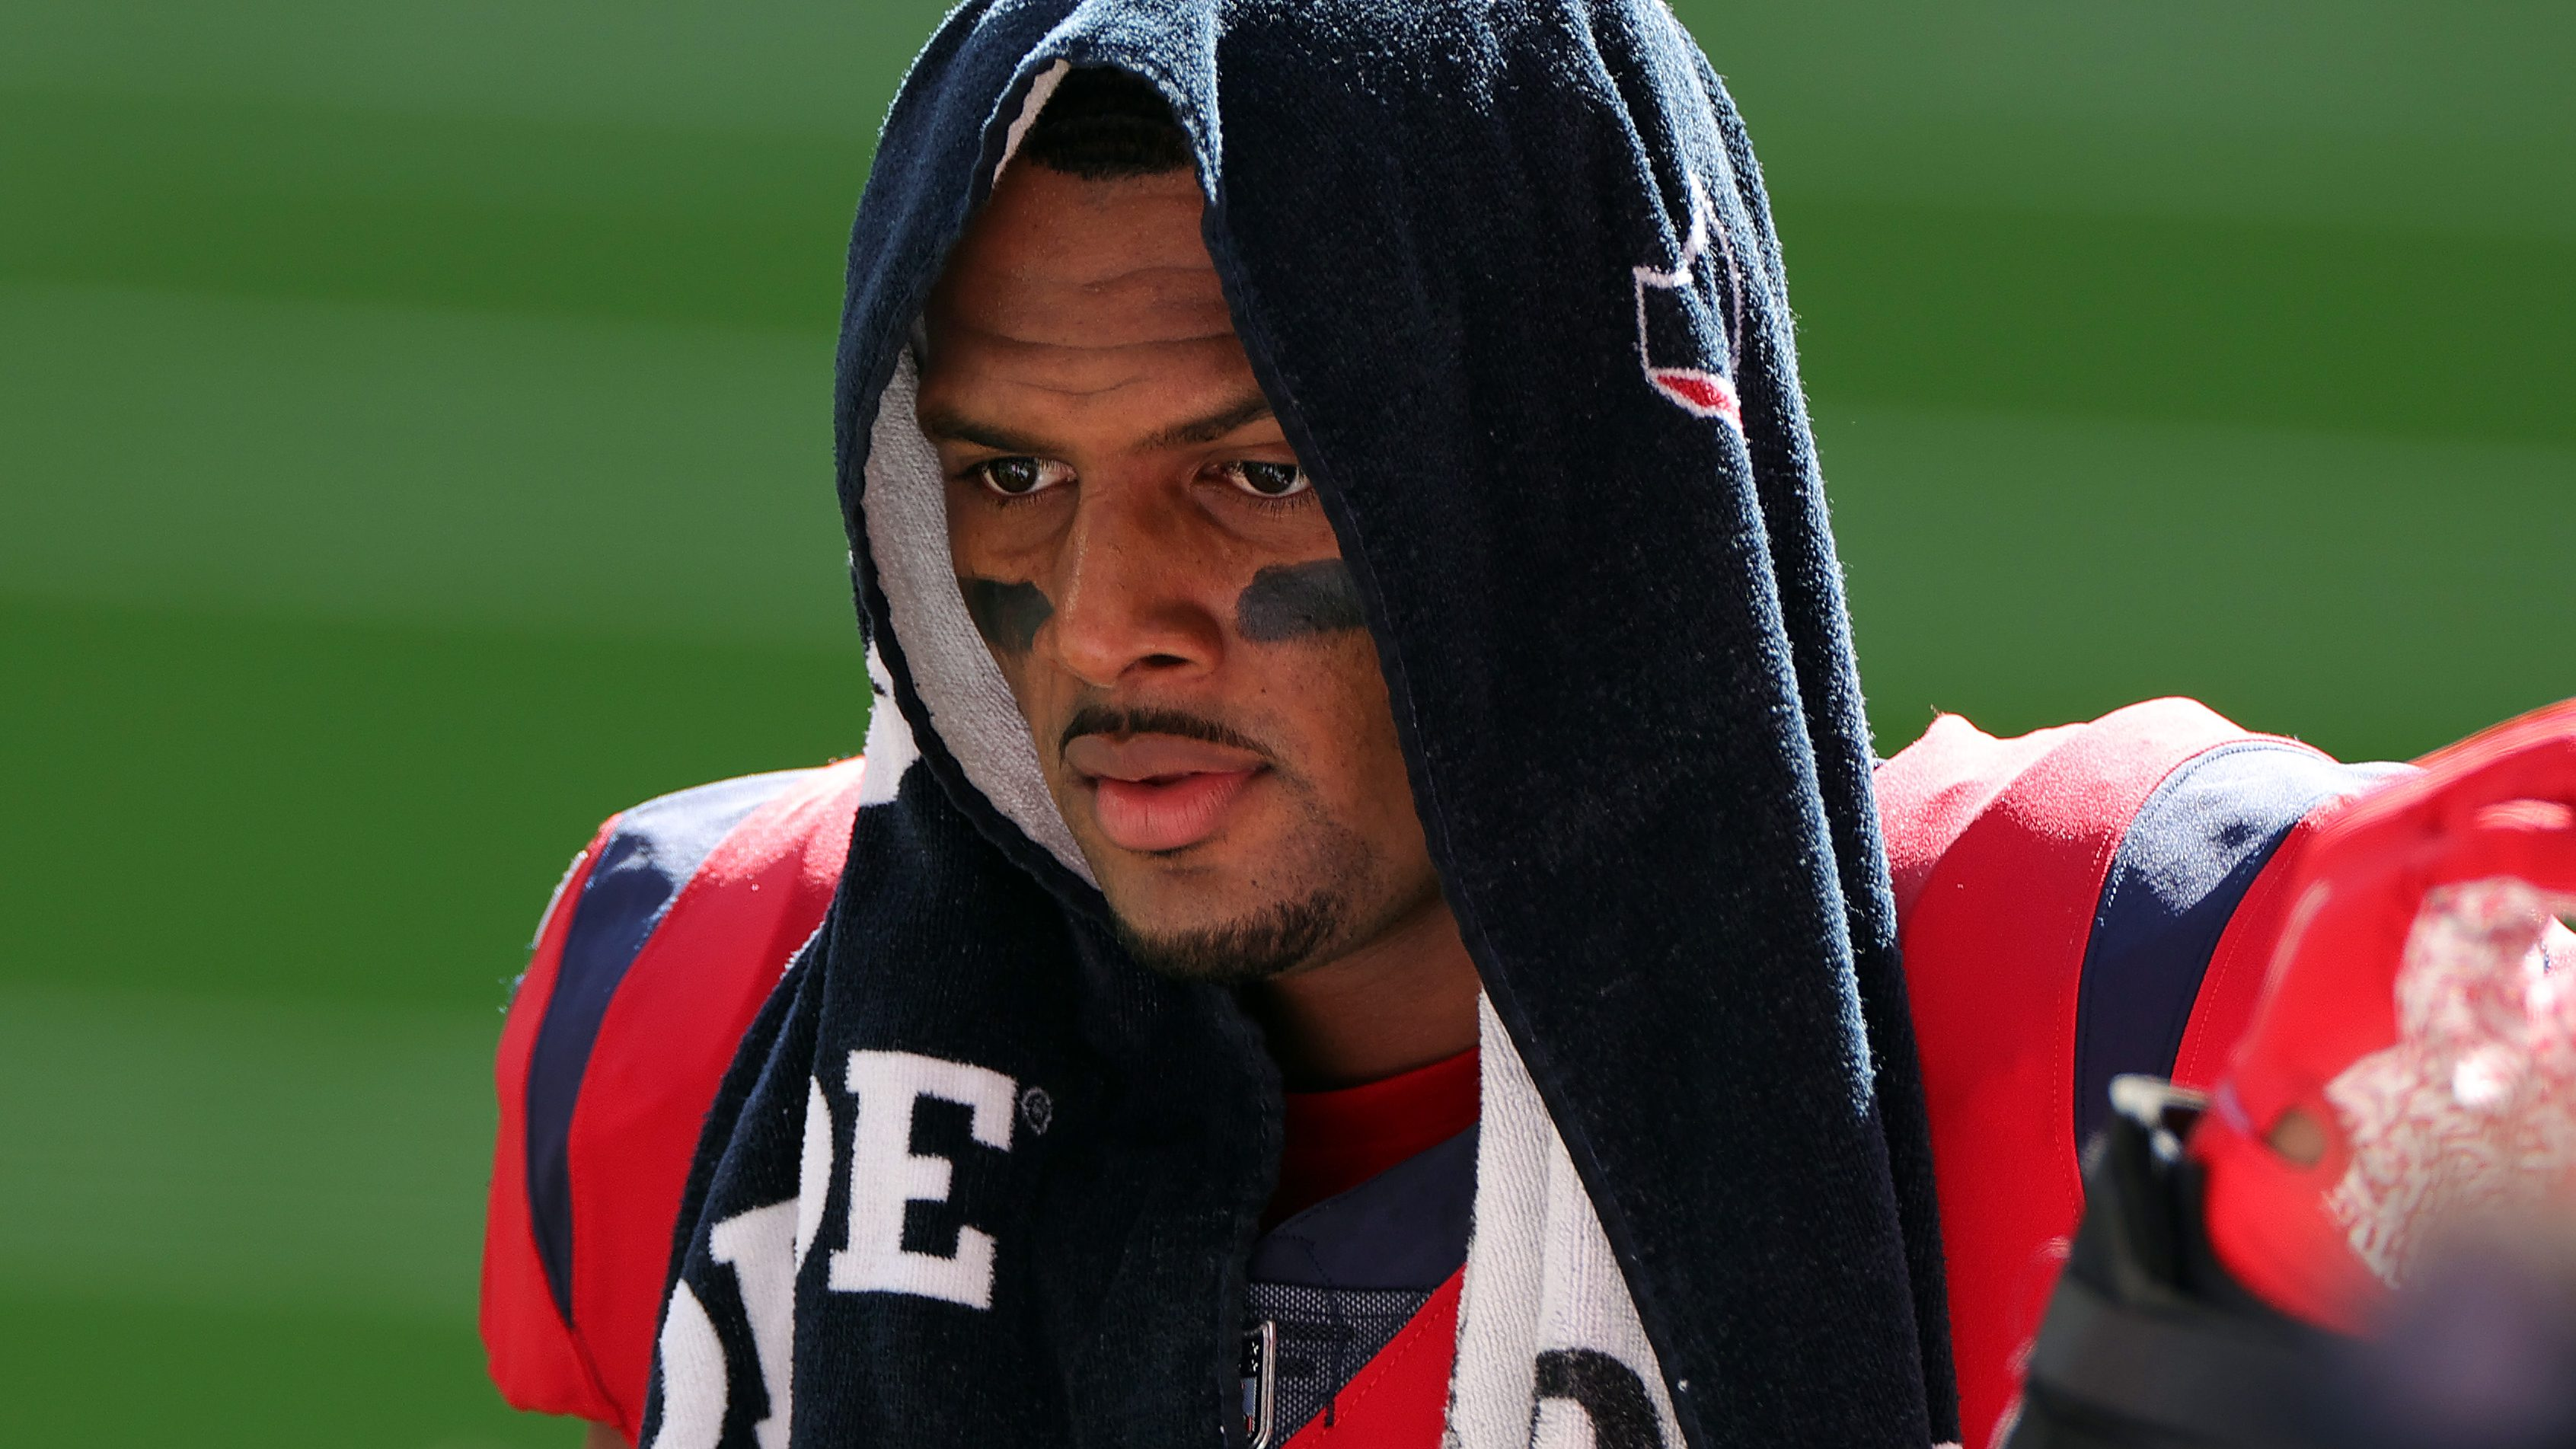 Deshaun Watson #4 of the Houston Texans reacts during the first half against the Indianapolis Colts at NRG Stadium on December 06, 2020 in Houston, Texas.